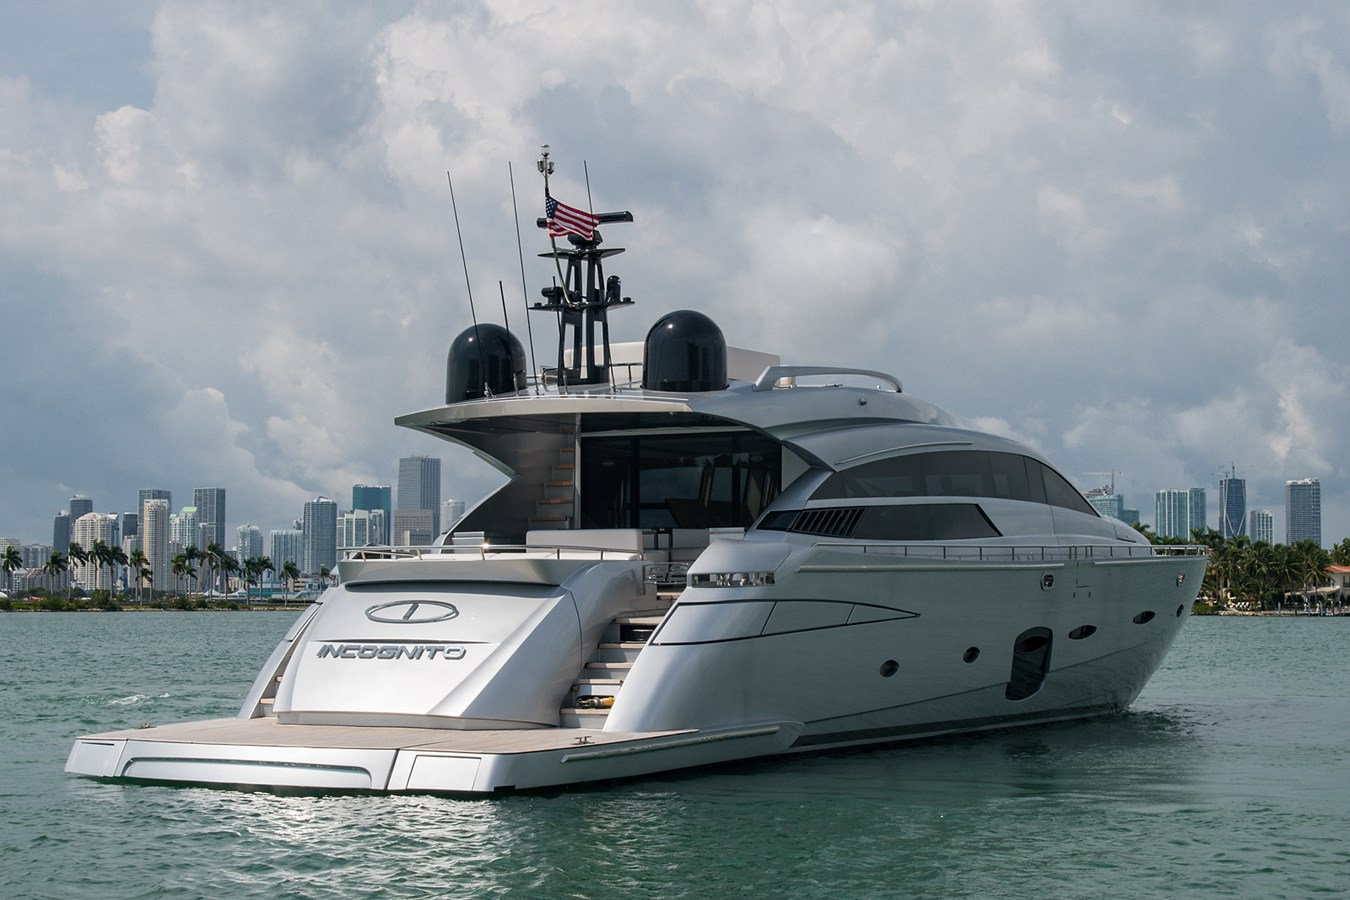 Incognito_Stern Profile5 2012 PERSHING  Motor Yacht 2810537